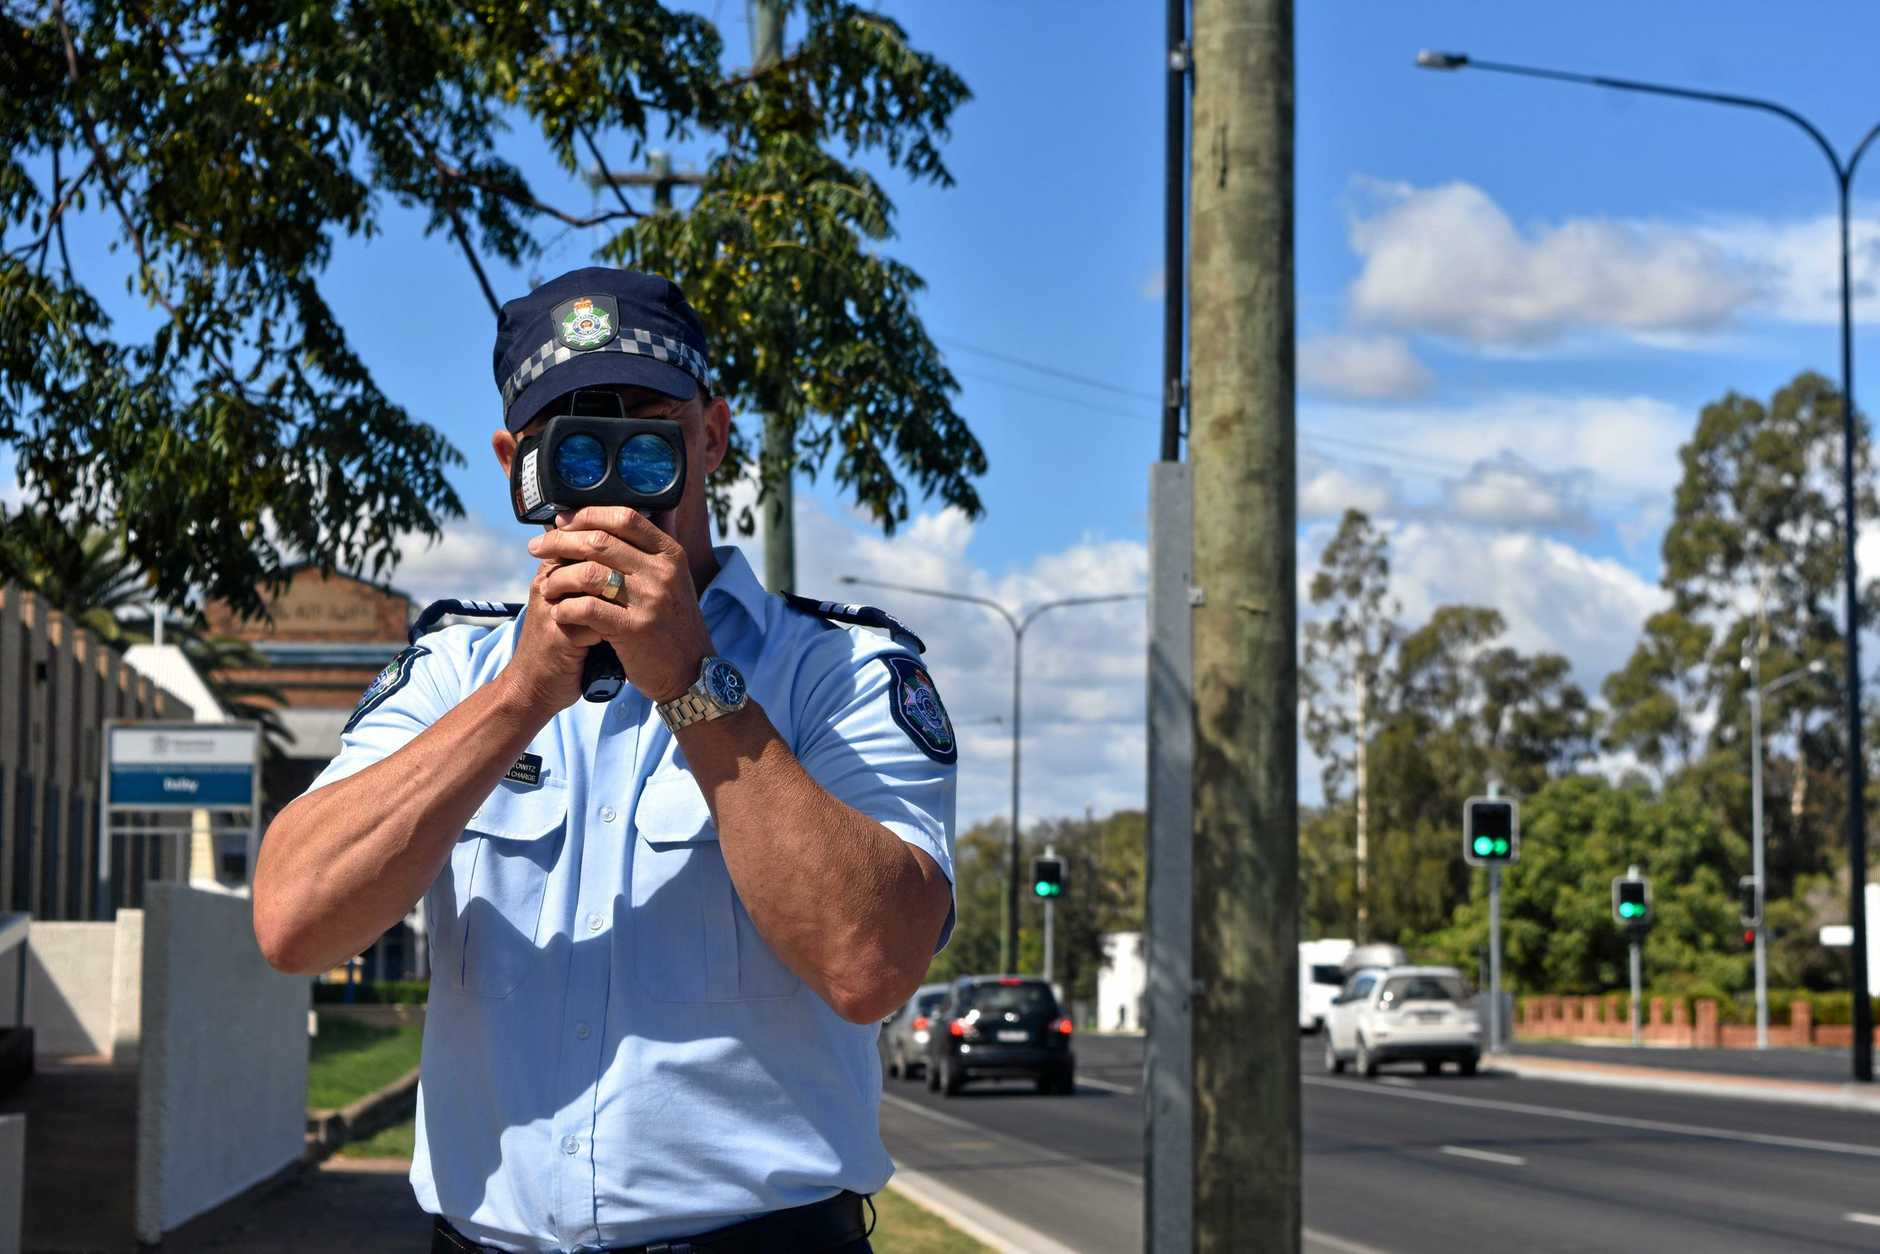 ENOUGH IS ENOUGH: Traffic cops are now pleading with drivers to think before they act.